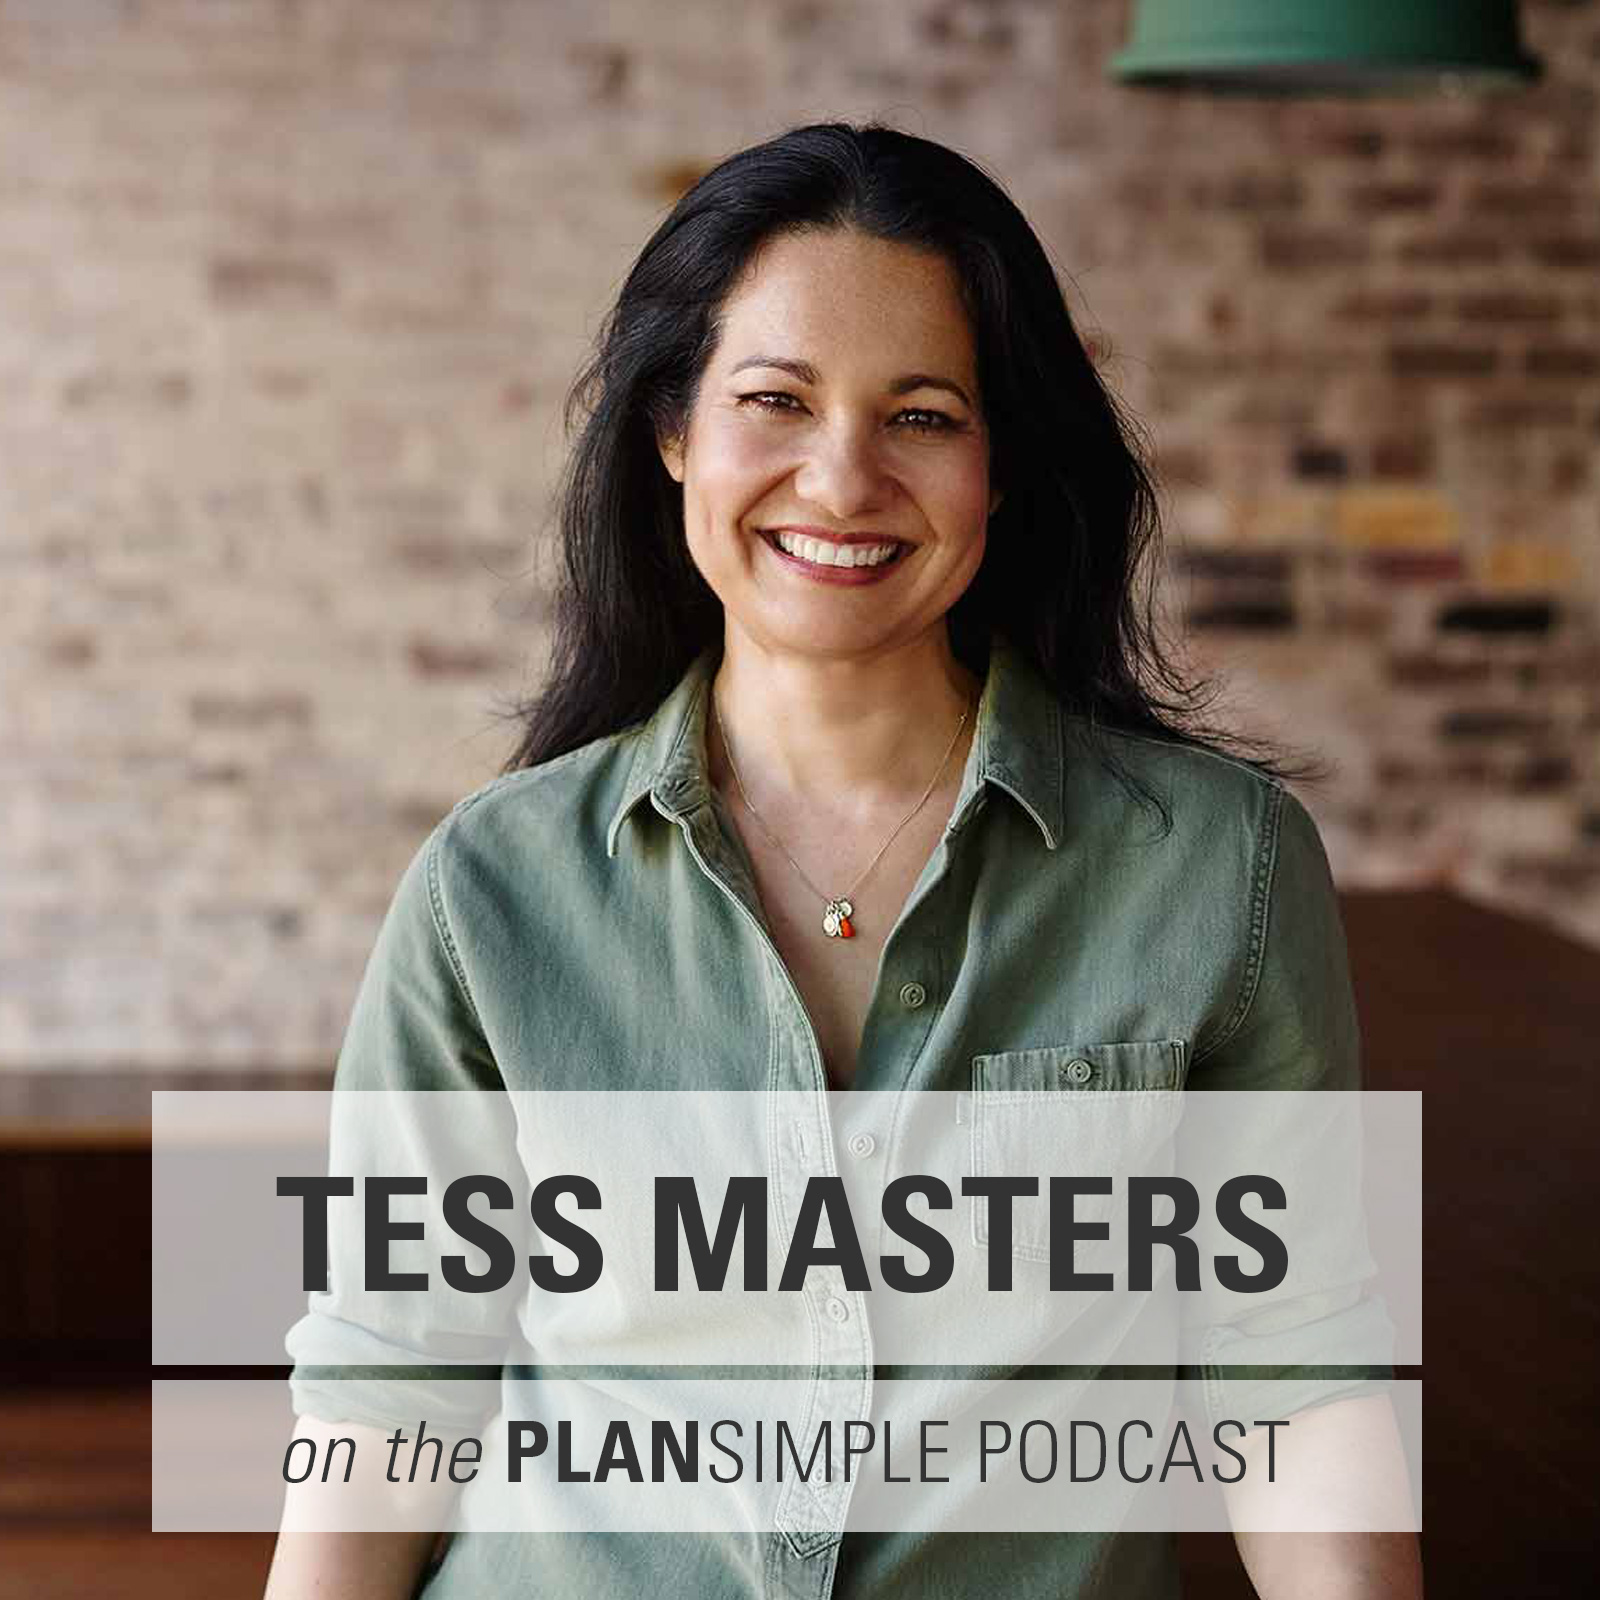 Blend It With Tess Masters